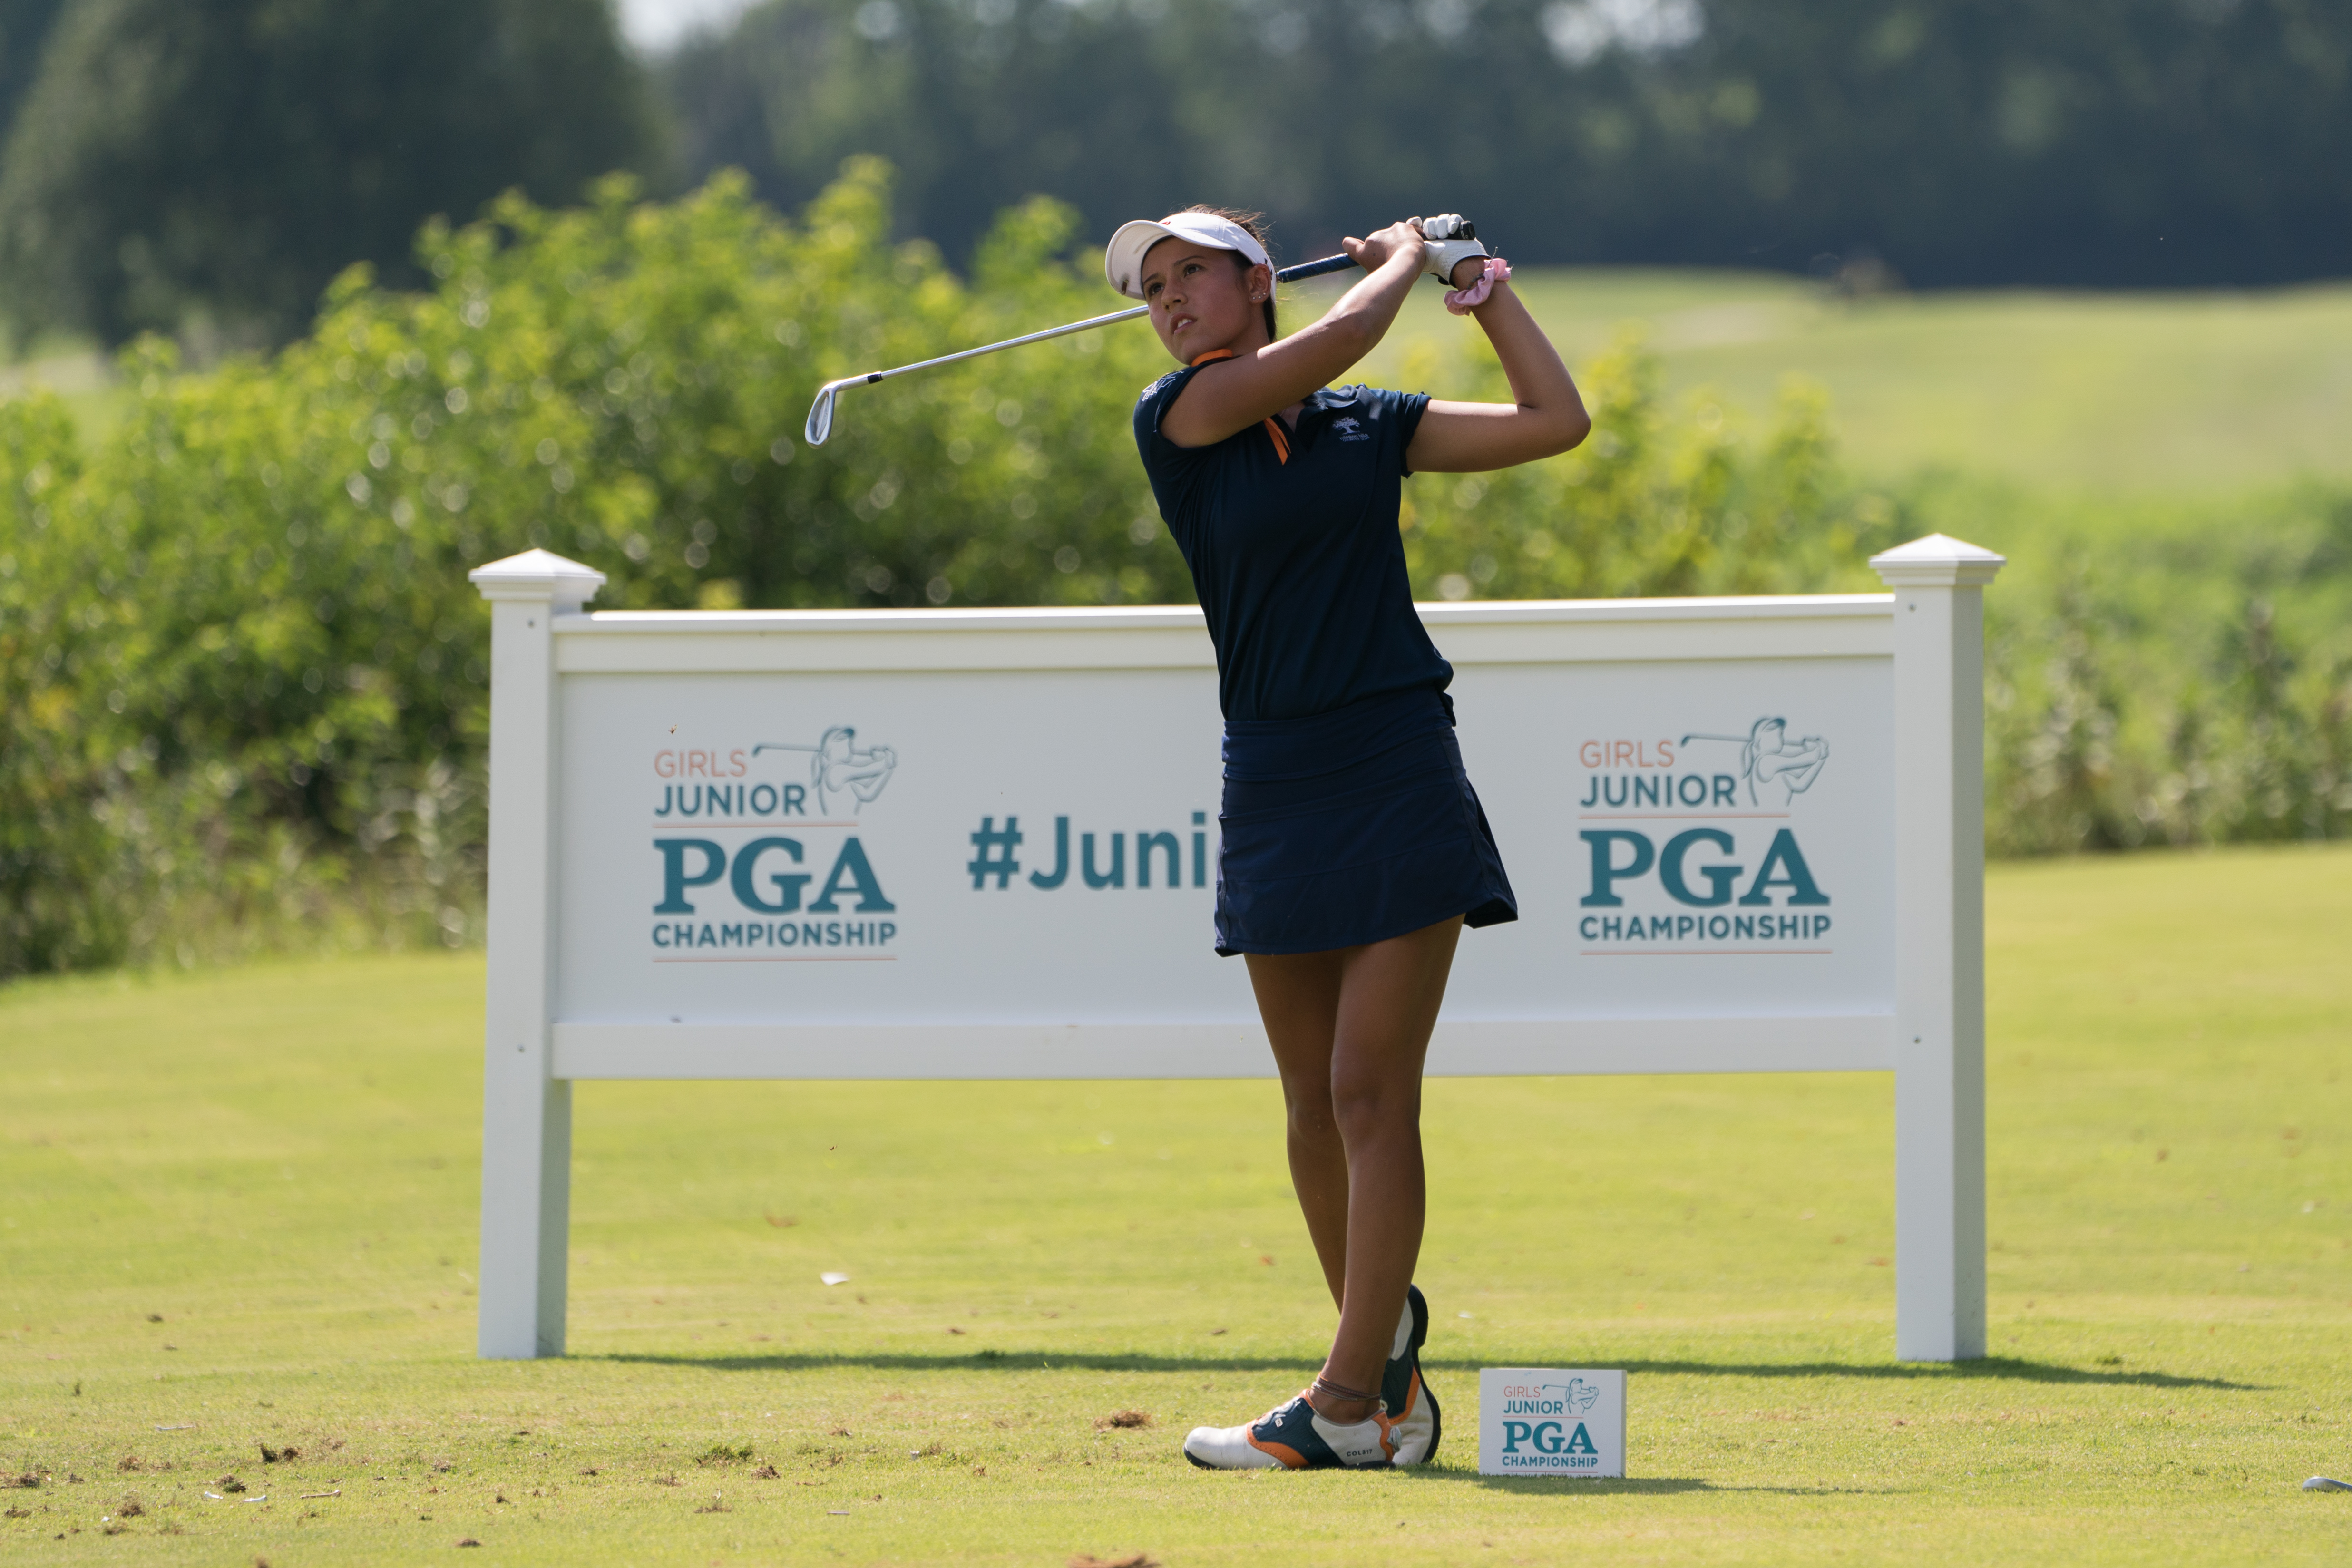 Record-Setting Round for Alexa Melton, Paces the Field at Girls Junior PGA